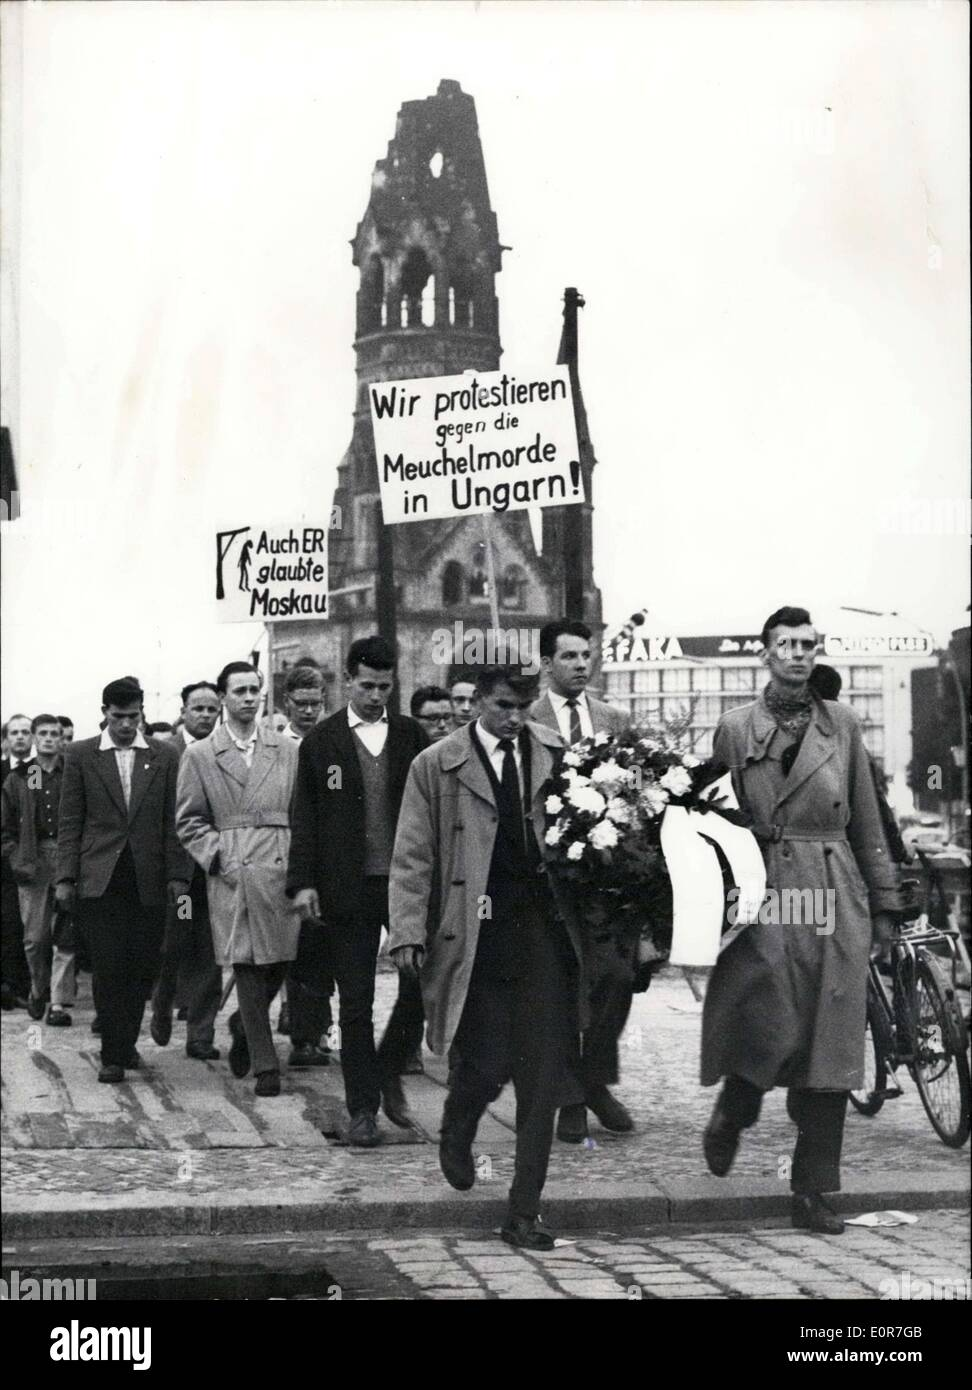 Jun. 25, 1958 - The members of a student union in German marched in silence to the memorial for victims of Stalinism to protest - Stock Image